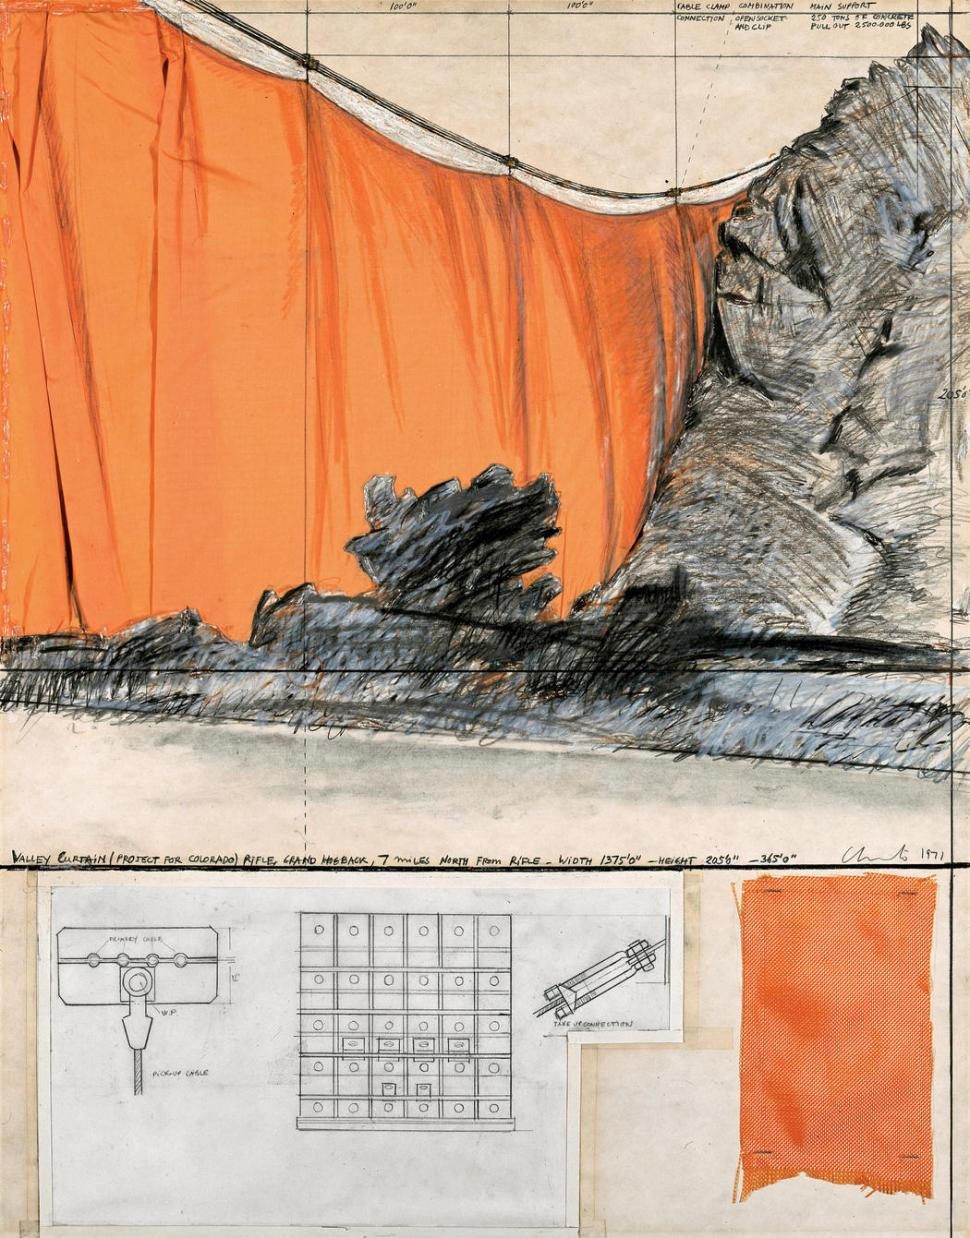 """Christo Valley Curtain (Project for Colorado) Collage 1971 Pencil, fabric, wax crayon, hand-drawn technical data, fabric sample, tape and staples 28 x 22"""" (71 x 56 cm) Photo: Shunk-Kender © 1971 Christo"""